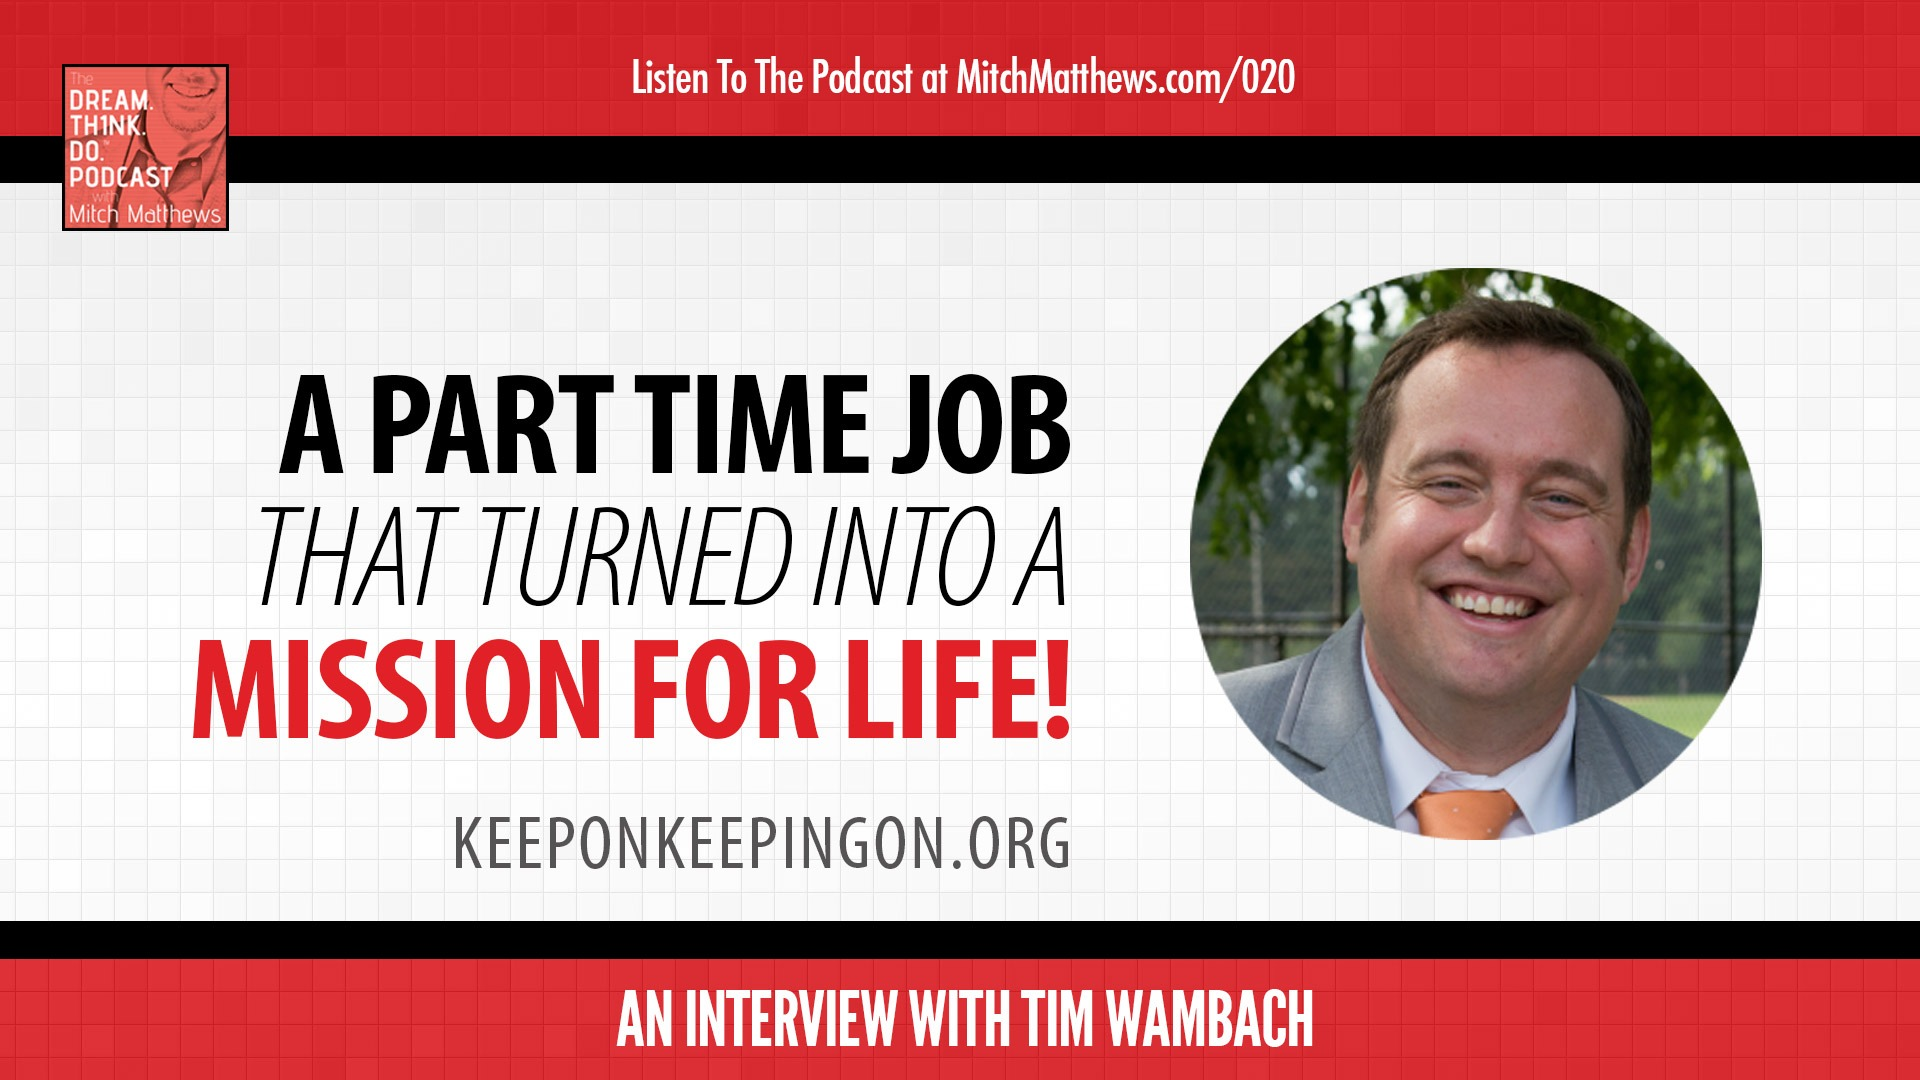 Tim Wambach | A Part Time Job That Turned Into a Mission For Life!